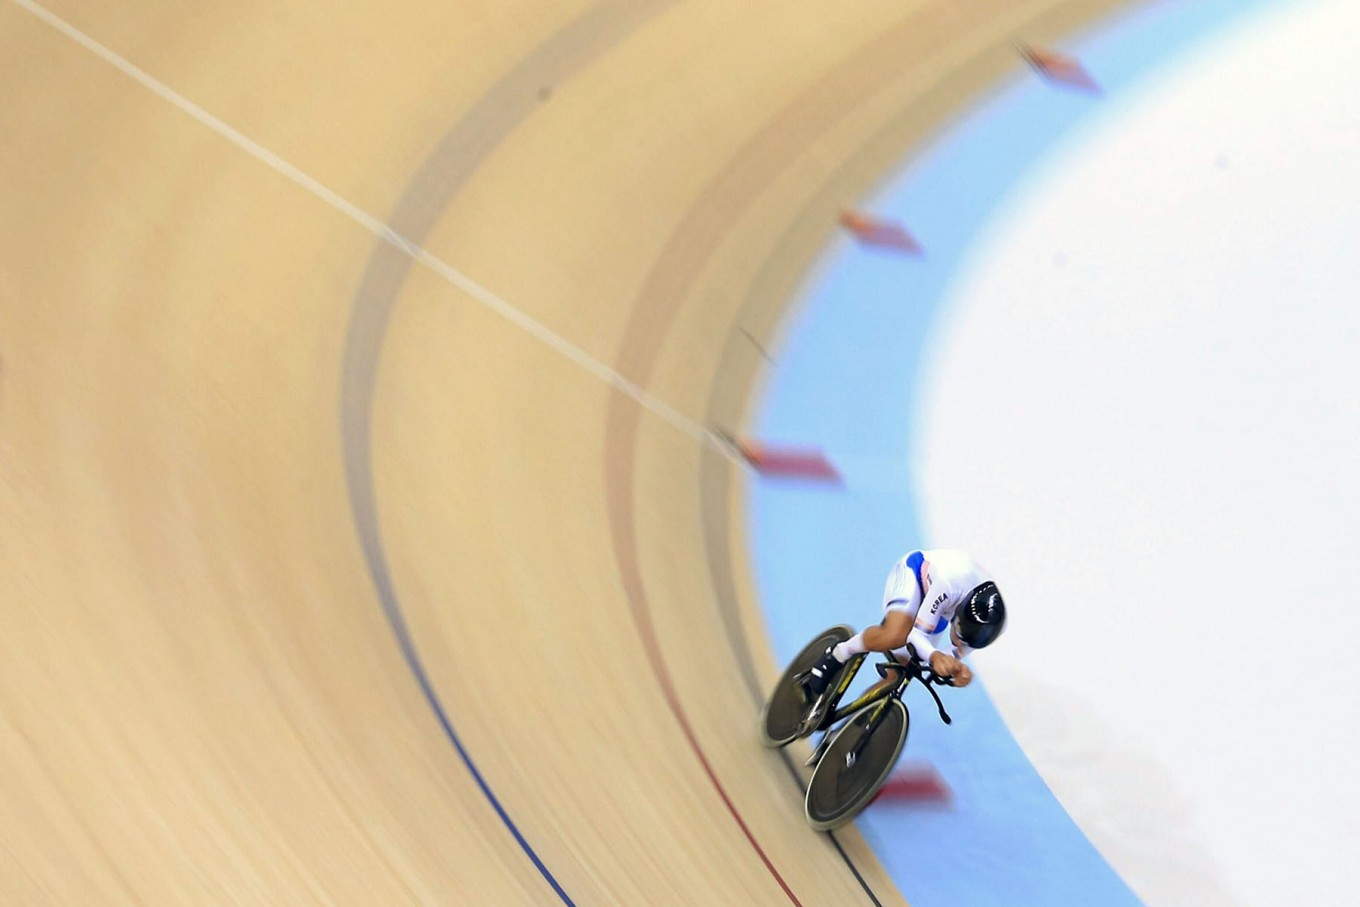 South Korea's Park Sang-hoon races during cycling track men's 4,000-meter individual pursuit. Park won the gold and broke the Asian Games record with a final time of 4:19,672. JP/Seto Wardhana